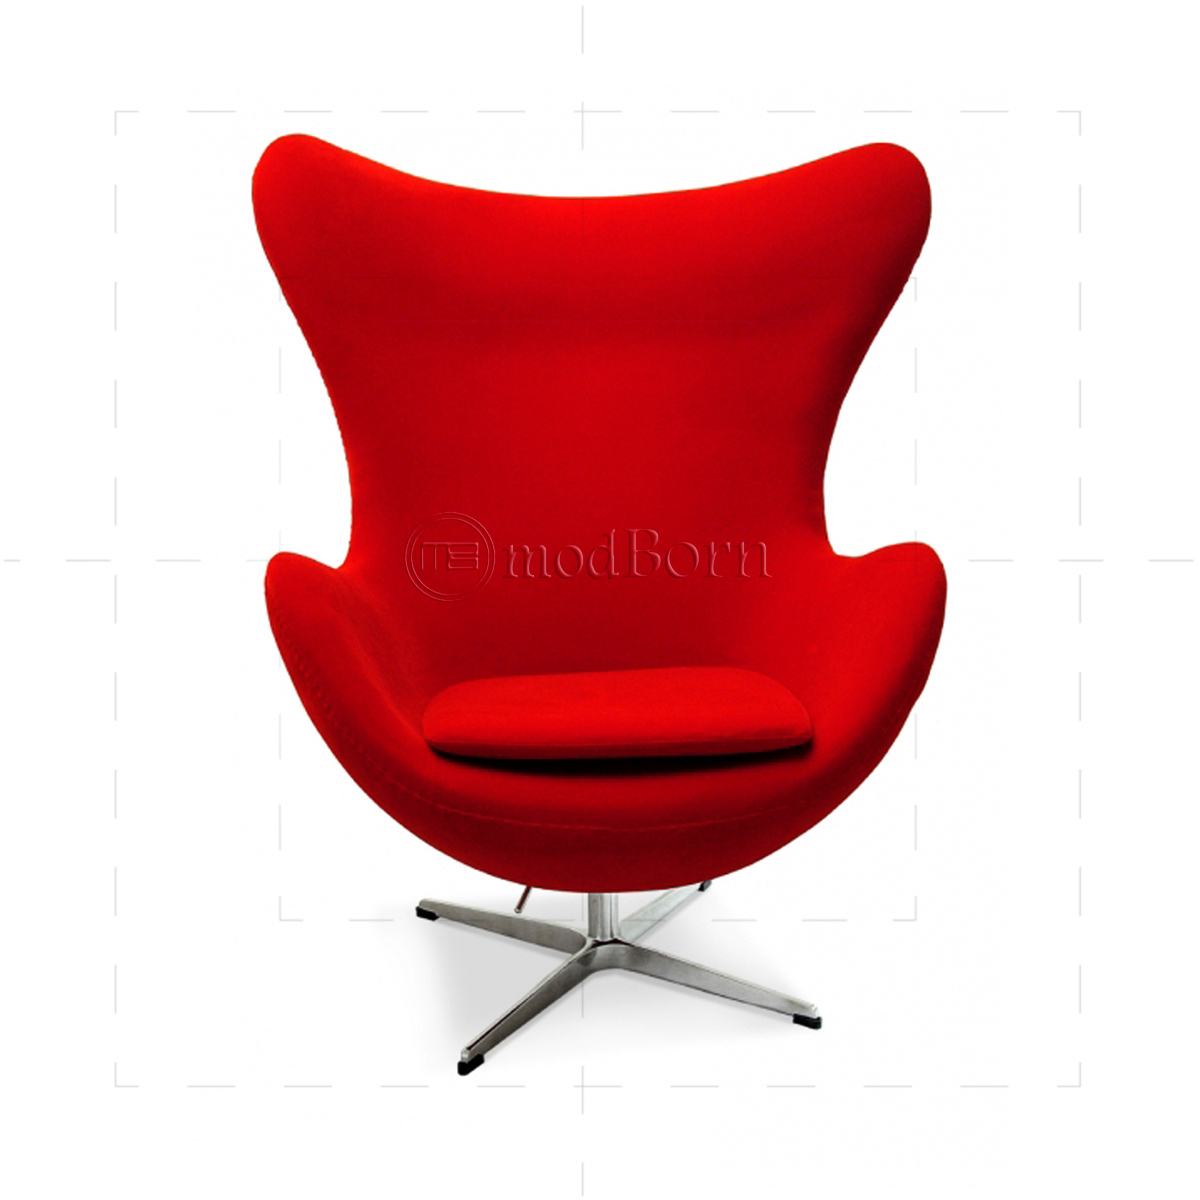 Arne Jacobsen Style Egg Cashmere Wool Chair RED : redfabricEggChairArneJacobsen front 1200x1200 from www.modborn.com size 1200 x 1200 jpeg 416kB